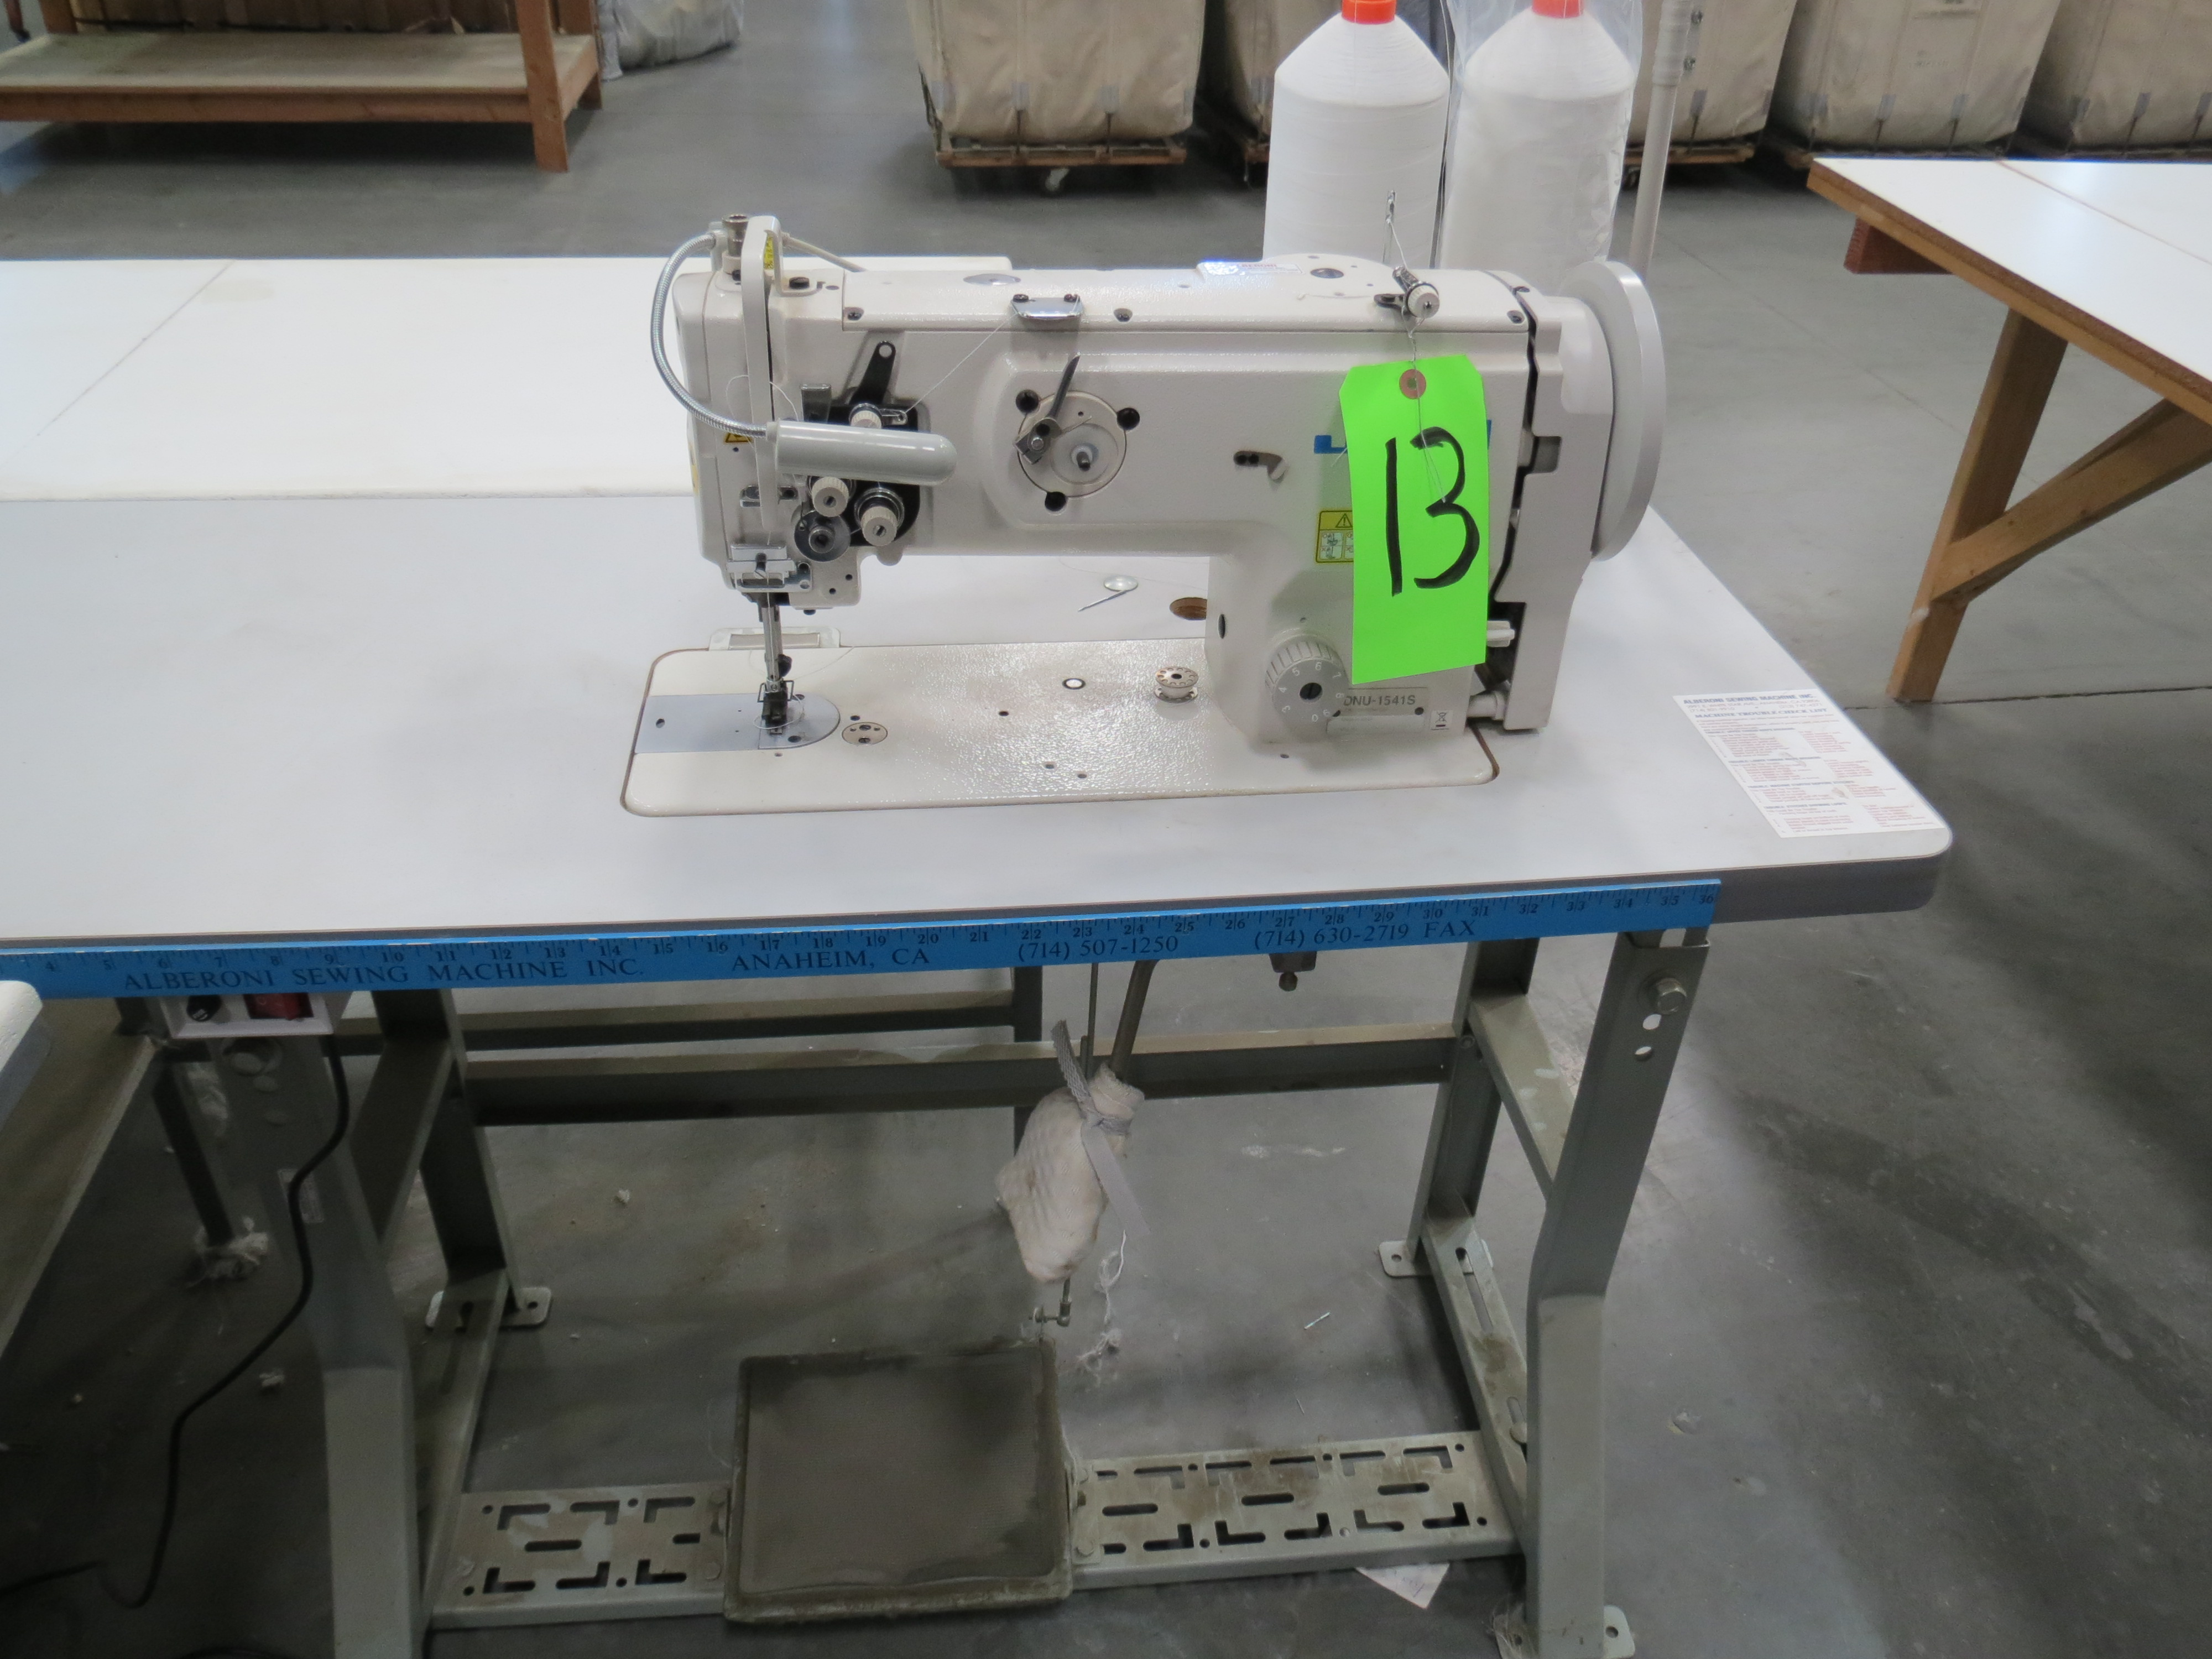 Juki DNU-1541SSingle Needle Sewing Machine, 110V, SN:3D8KF01172 with Table - Image 2 of 3